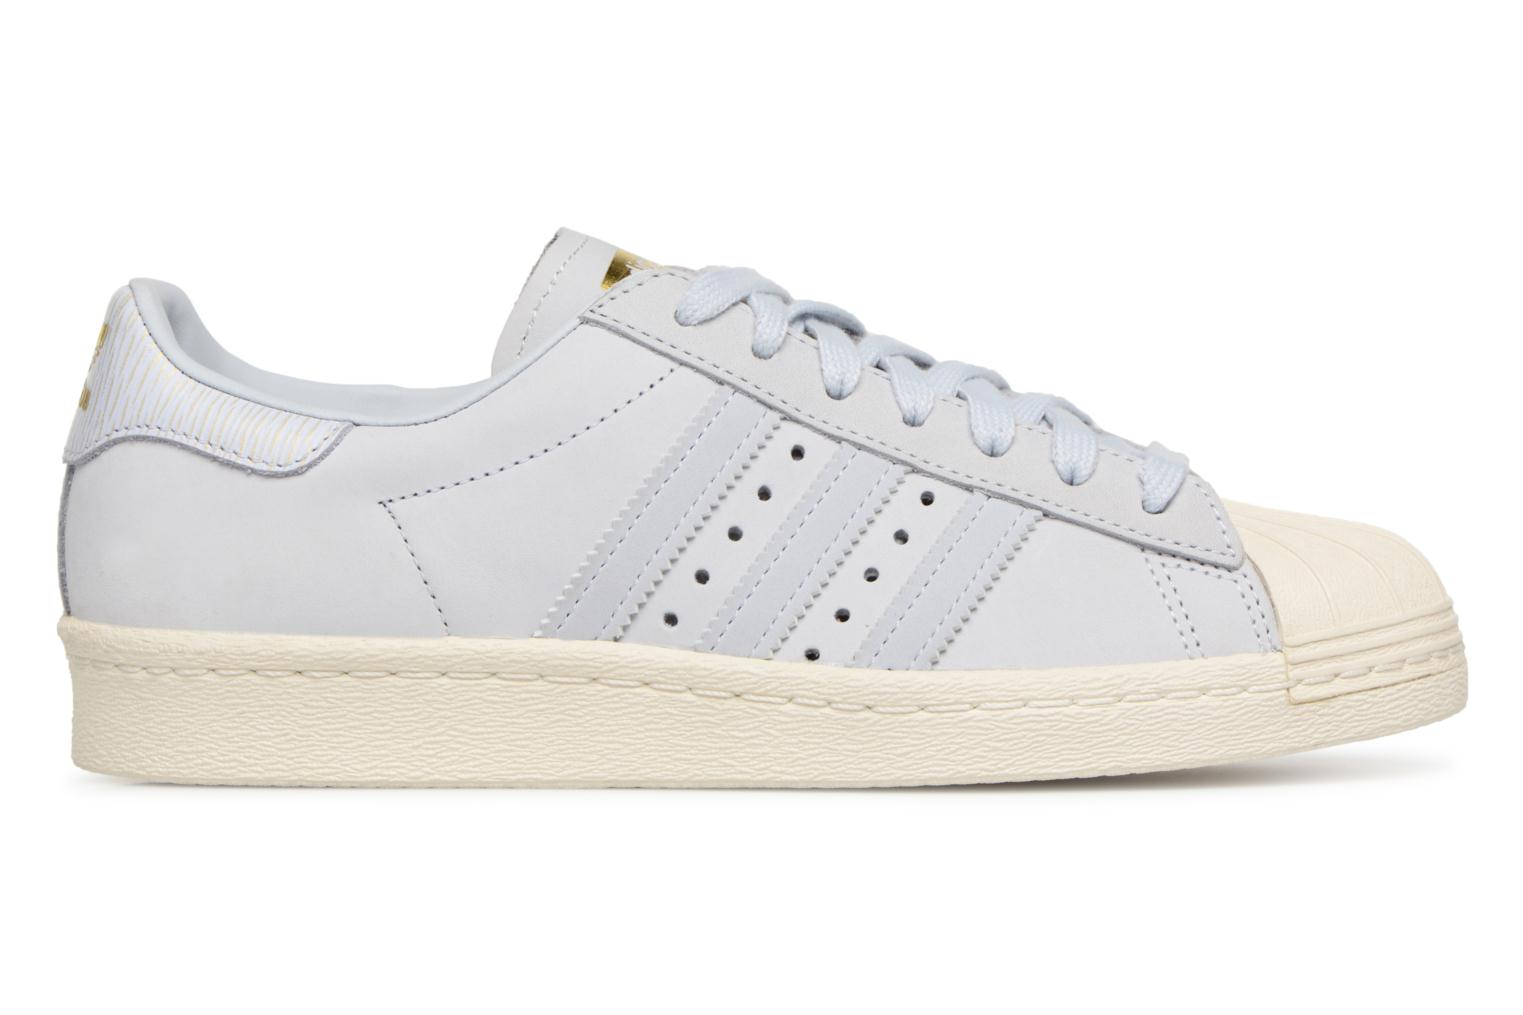 lowest price cd102 295aa Donna Adidas Originals Superstar 80S W Sneakers Azzurro